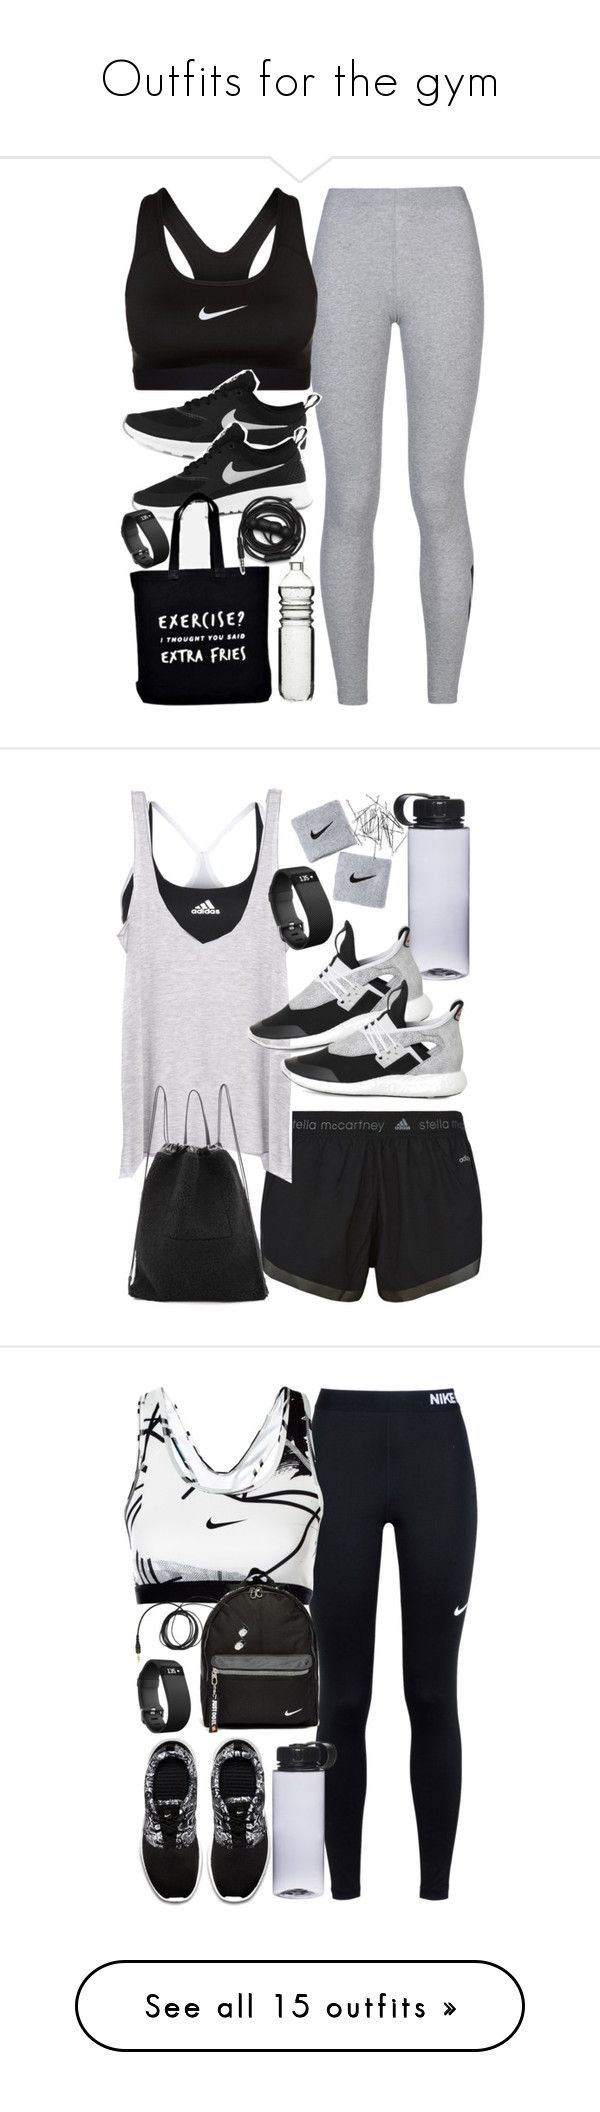 """Outfits for the gym"" by ferned ❤ liked on Polyvore featuring NIKE, Ellie Ellie, Fitbit, Dot & Bo, Urbanears, adidas, Enza Costa, Kara, Monki and Invisibobble"